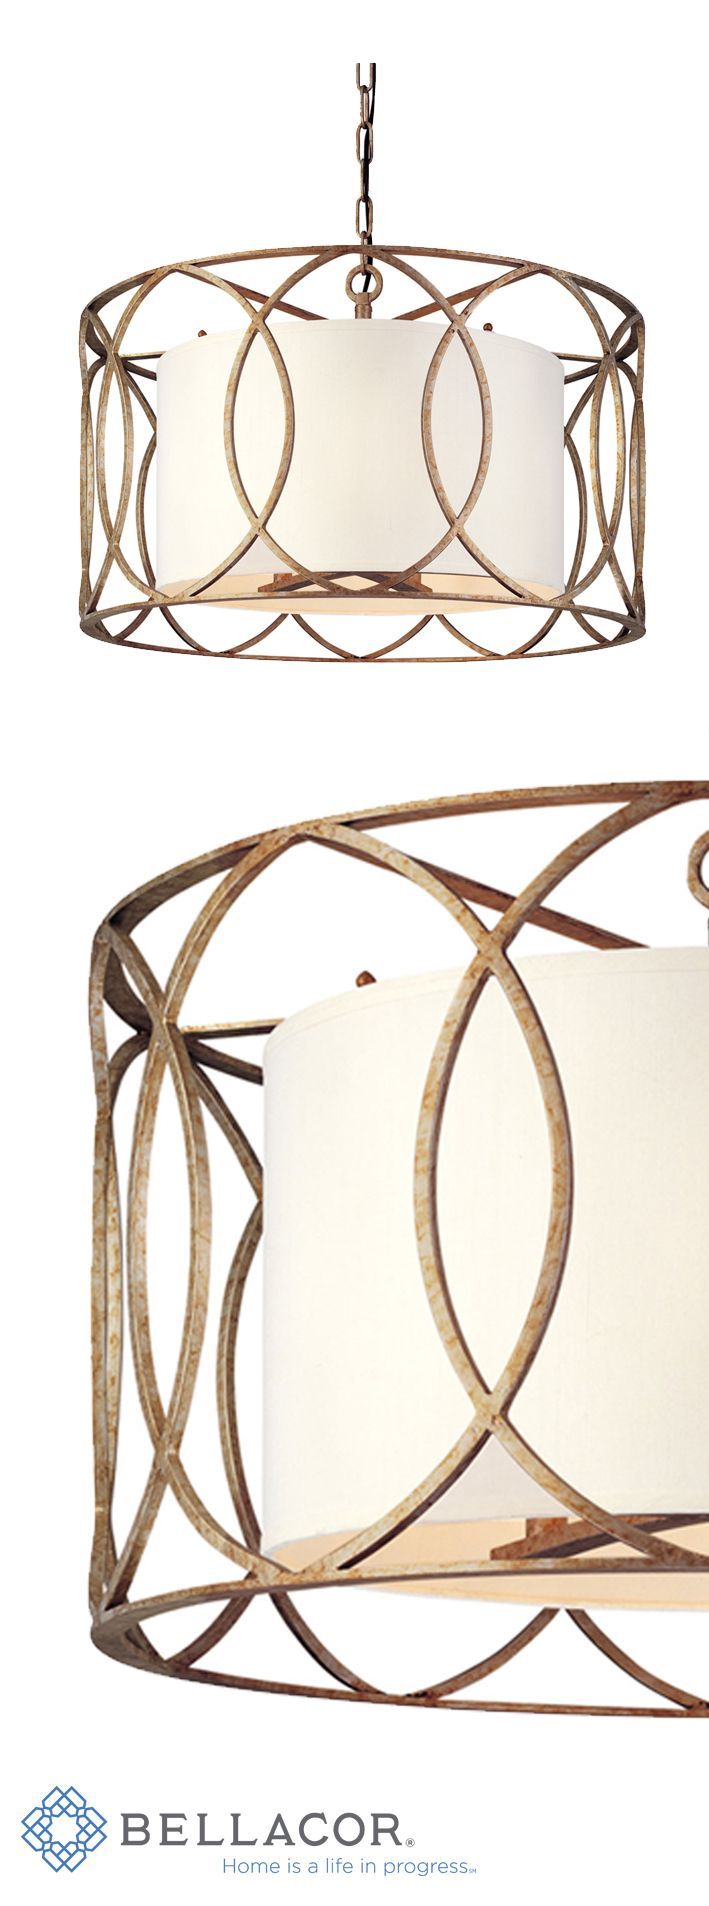 The Sausalito Pendant by Troy Lighting is a must-buy this holiday. Featuring hand-worked wrought iron and a linen shade with an elegant silver/gold finish, it can be a stylish fixture in your home for years to come. http://www.bellacor.com/productdetail/troy-f1285sg-sausalito-five-light-drum-pendant-189578.htm?partid=social_pinterestad_holiday_189578